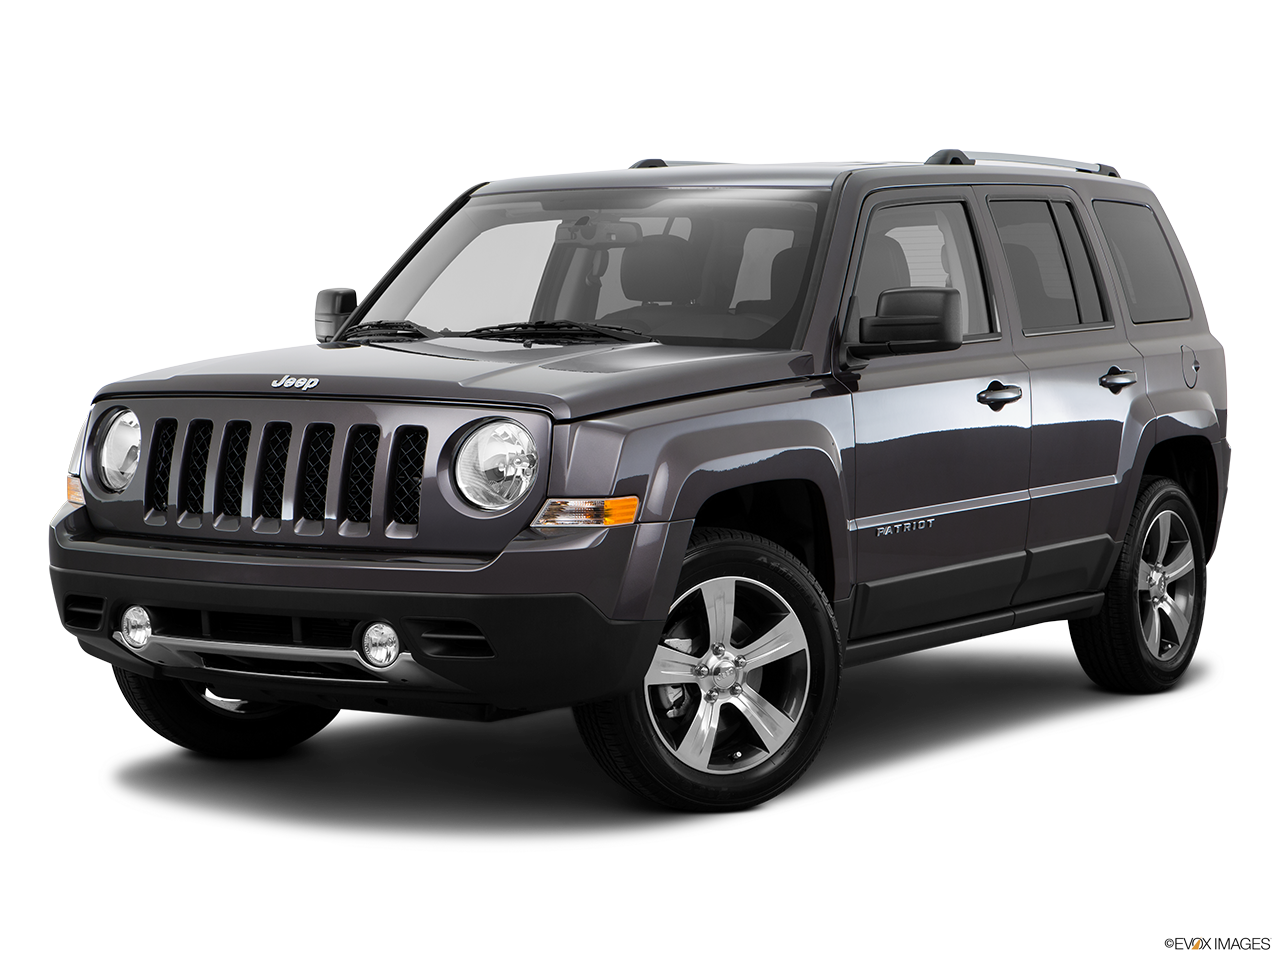 Test Drive A 2016 Jeep Patriot at Premier Jeep in Tracy